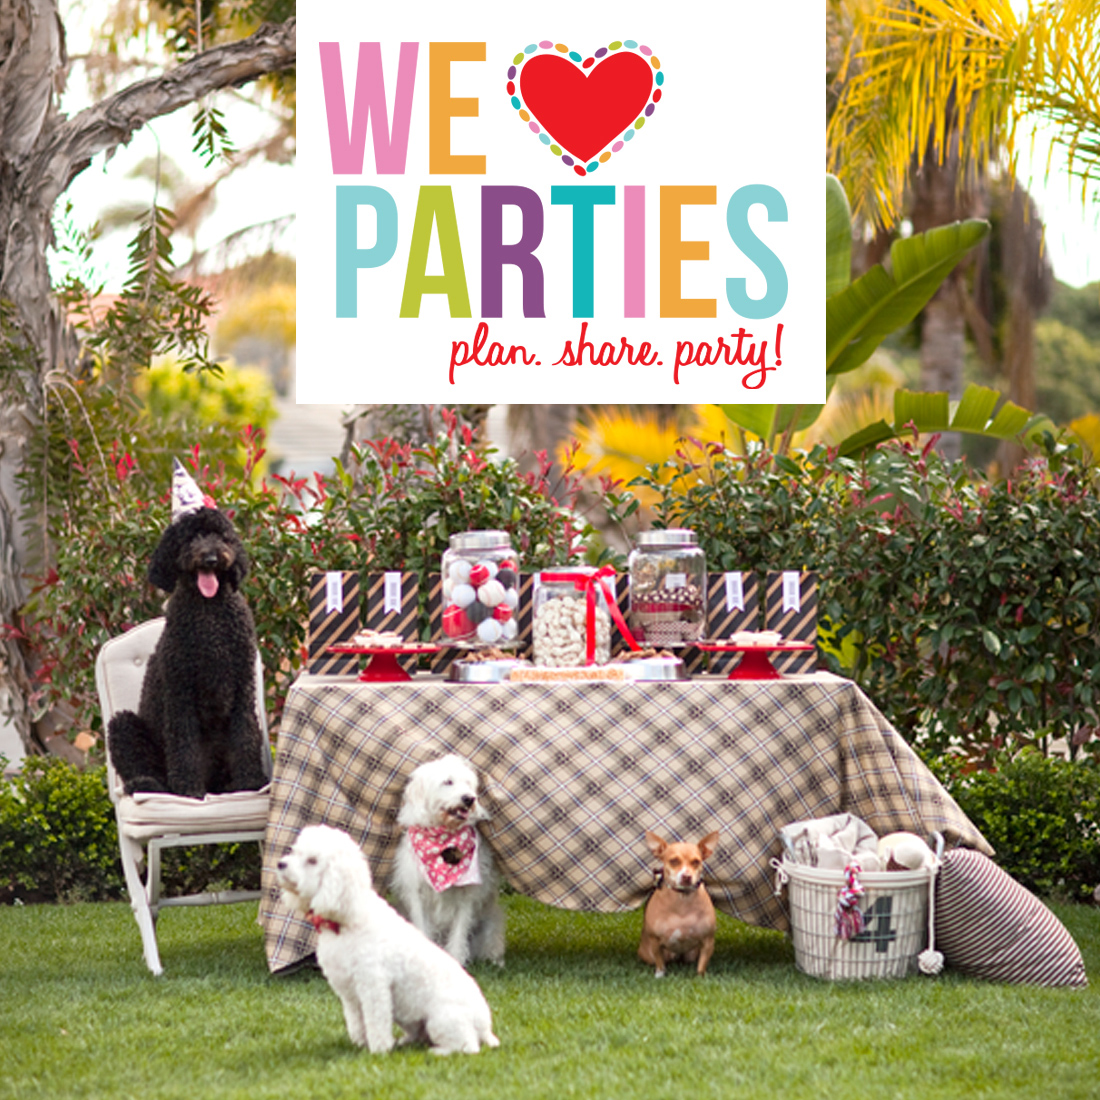 We Heart Parties - Website Design